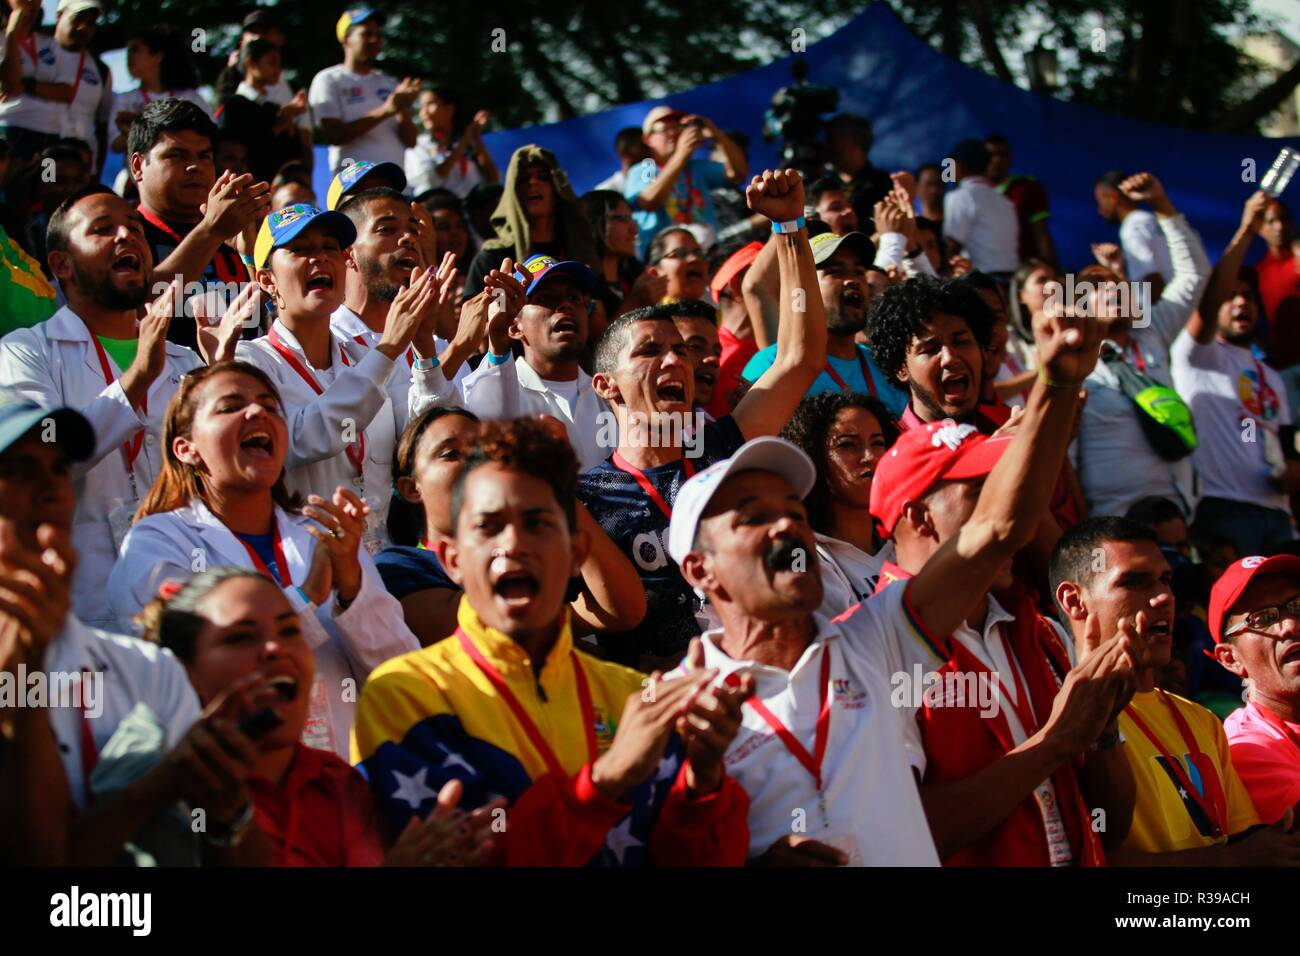 Caracas, Venezuela. 21st Nov, 2018. Supporters of Venezuelan President Nicolas Maduro participate in a march for the celebration of Student Day, in Caracas, Venezuela, 21 November 2018. Maduro asked university students to join the militias and prepare for the defense of the country 'with weapons in hand' if necessary, in the face of possible attacks by 'imperialism' and 'oligarchy', as he usually refers to the United States and the opposition. Credit: CRISTIAN HERNANDEZ/EFE/Alamy Live News - Stock Image